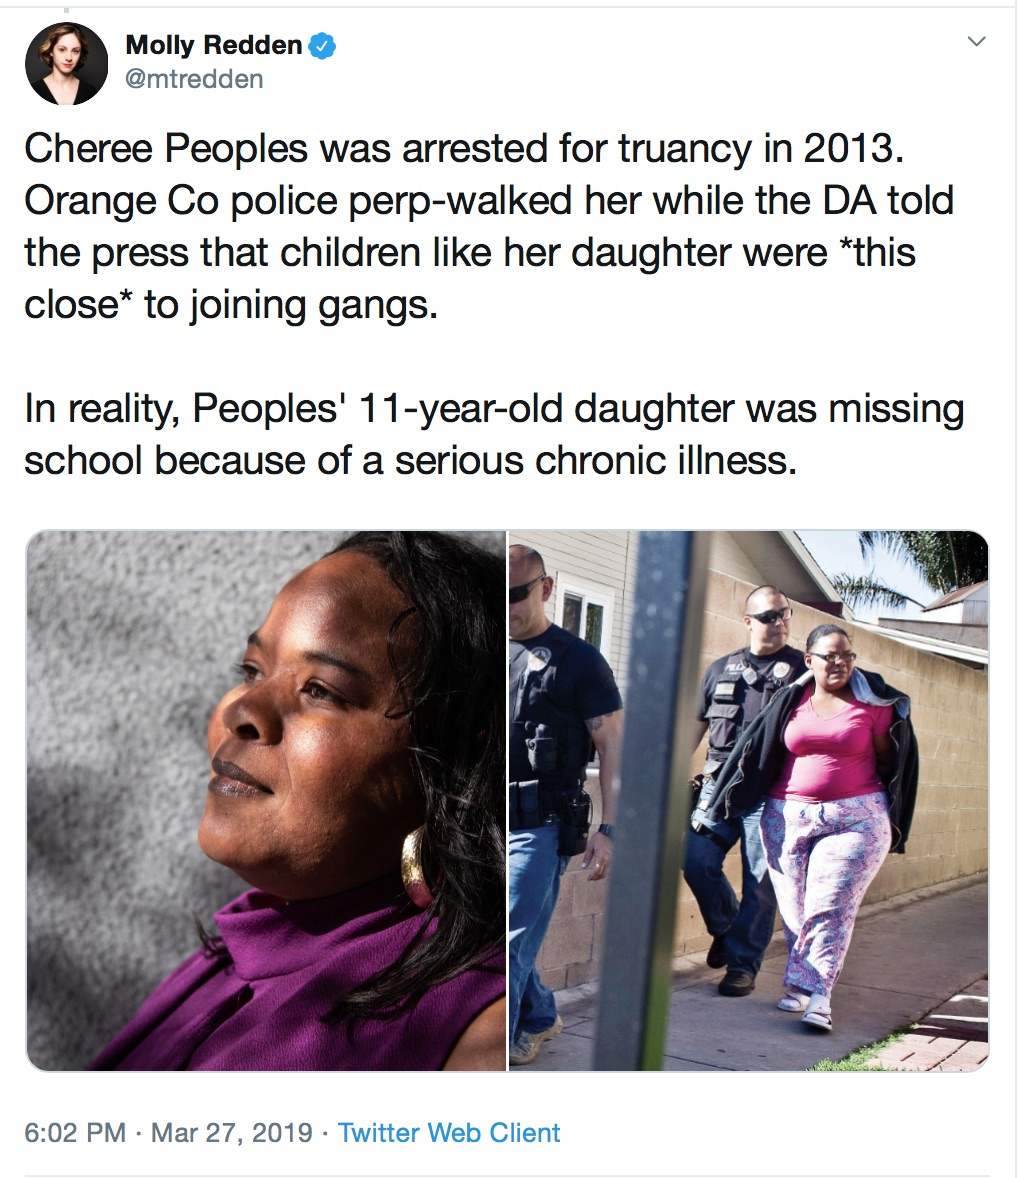 Cheree Peoples